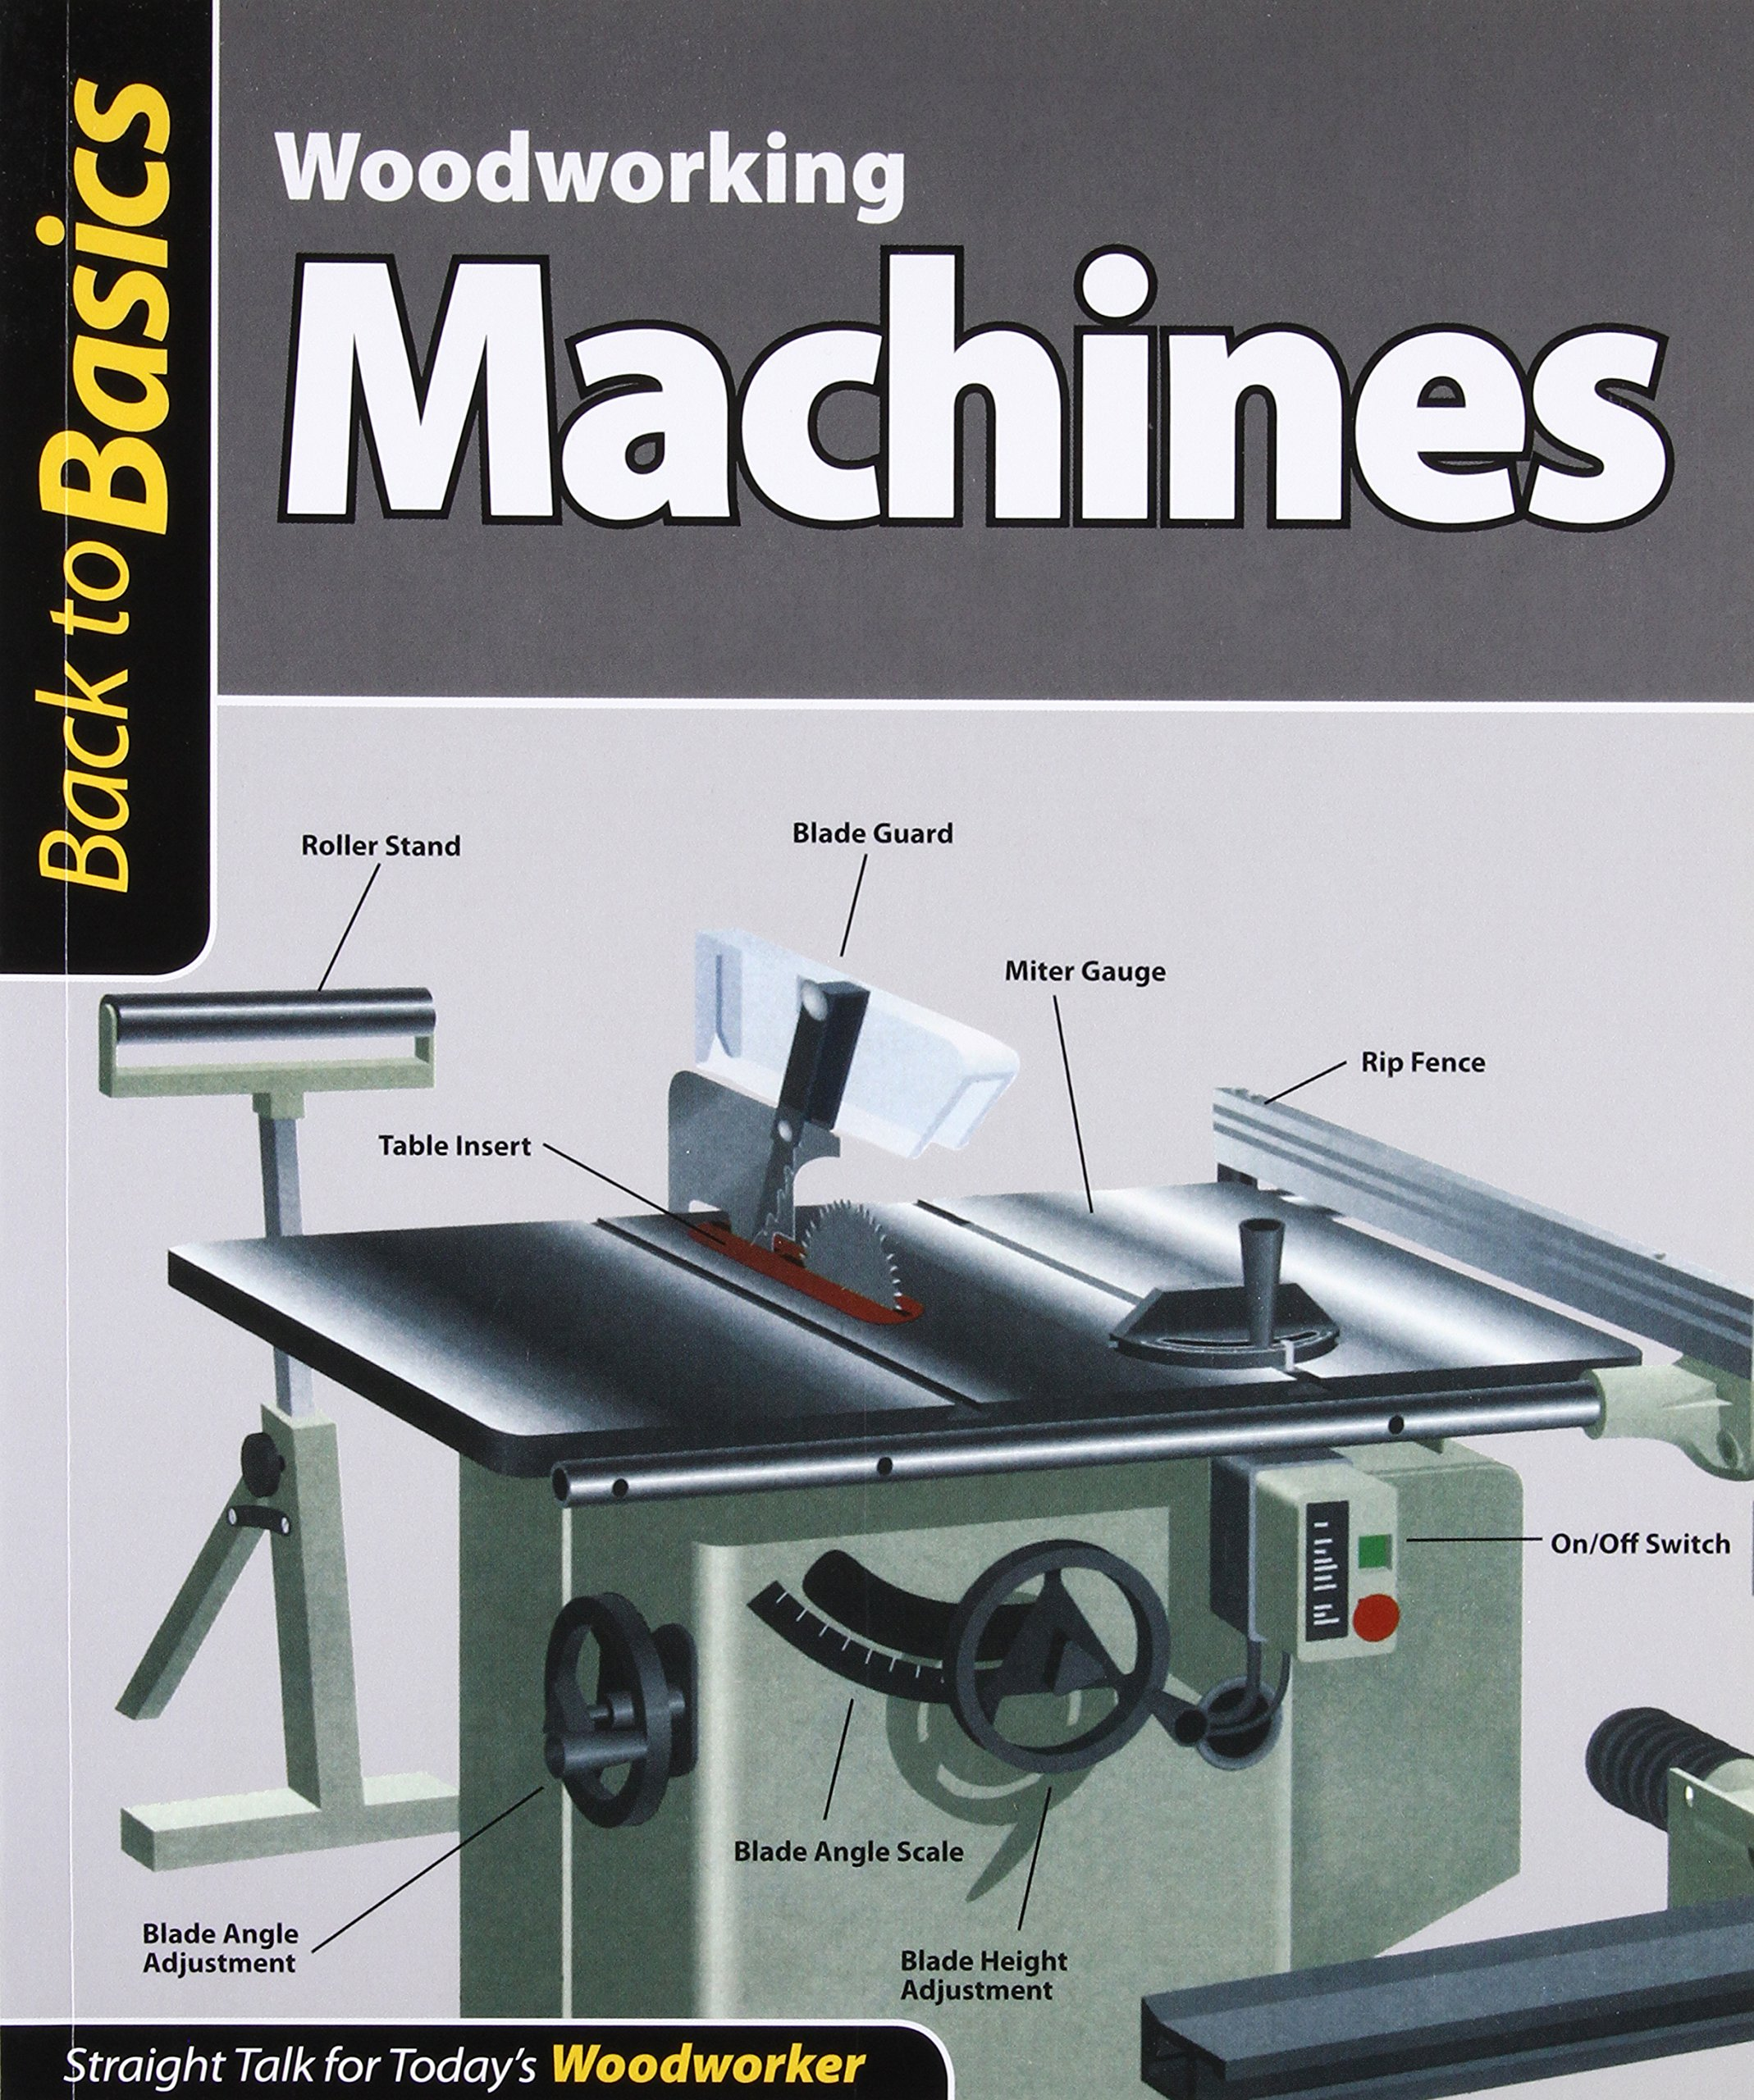 Woodworking Machines (Back to Basics): Straight Talk for Today's Woodworker